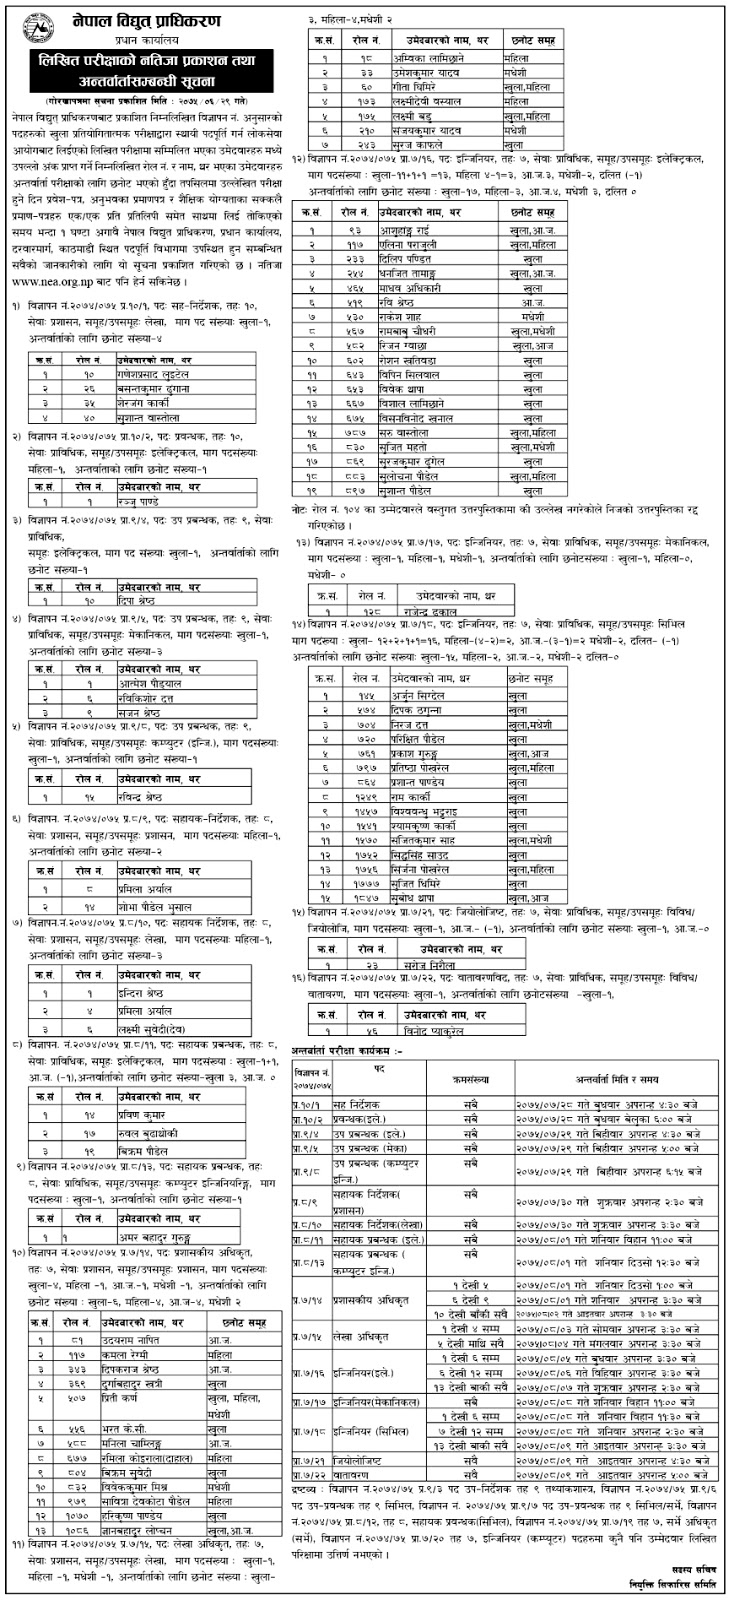 Nepal Bidhyut Pradhikaran (Nepal Electricity Authority) Result Out